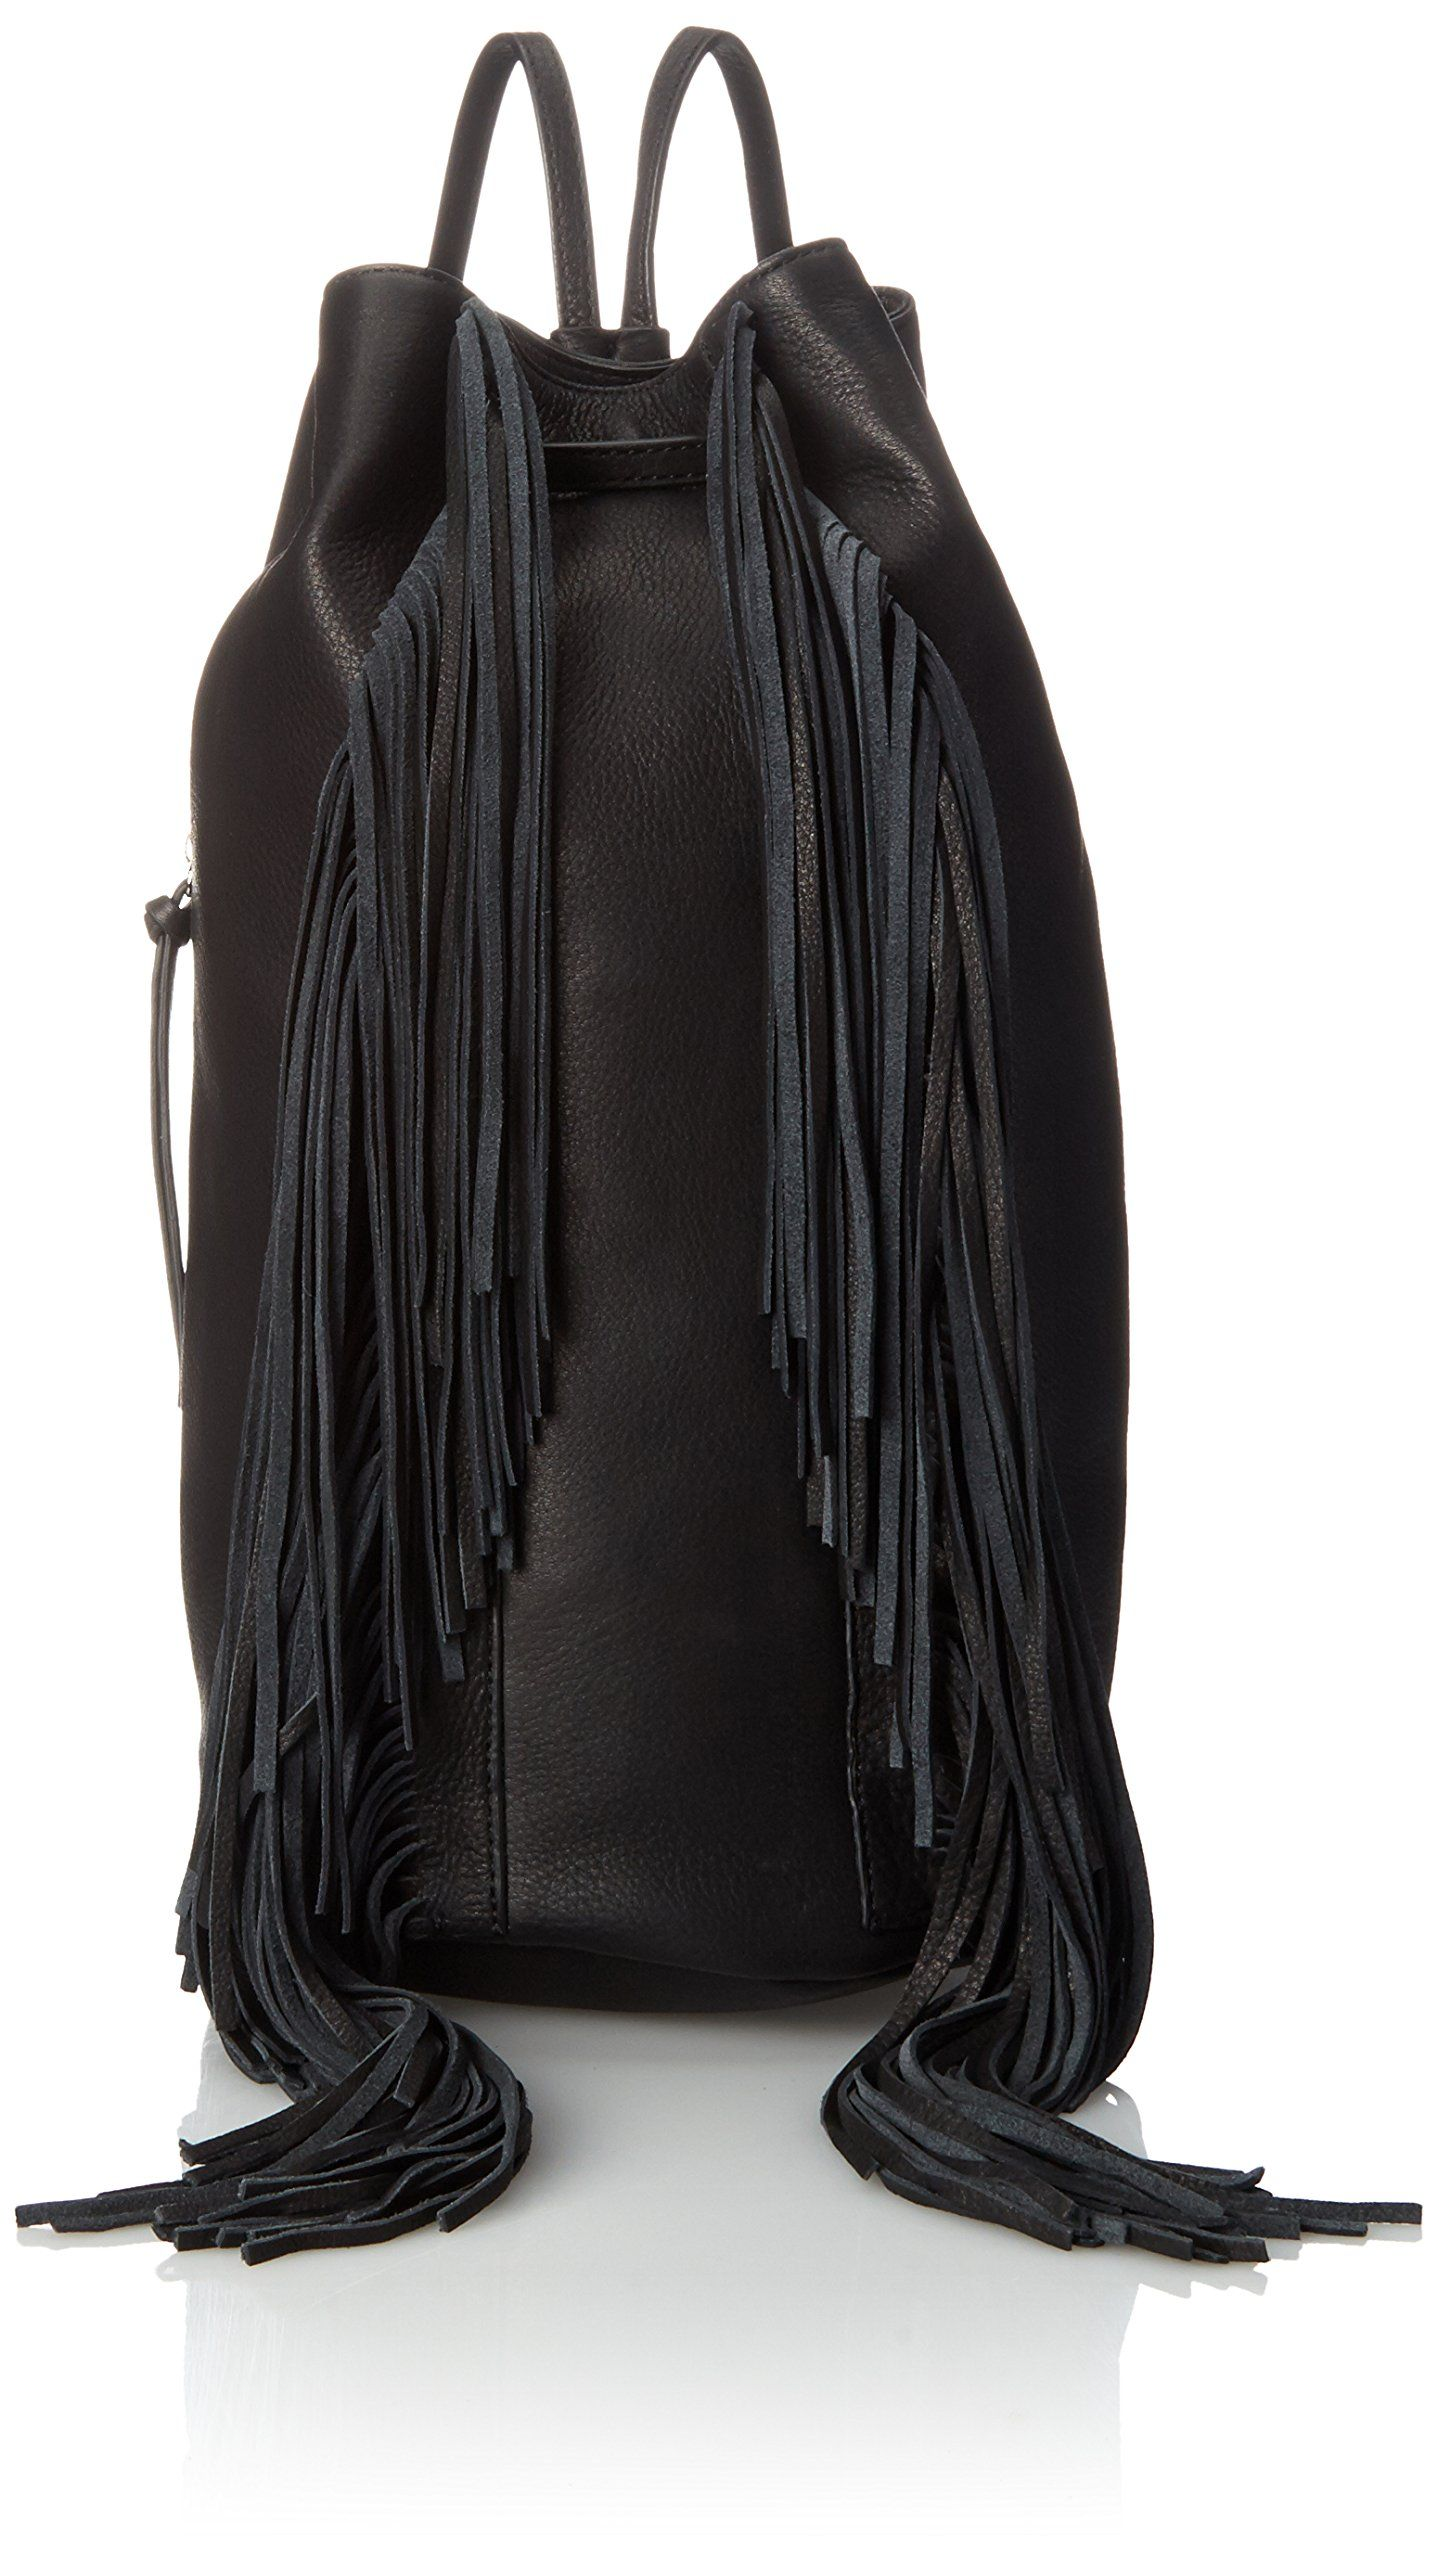 Amazon.com: Kenneth Cole New York Prince Sling Fashion Backpack, Charcoal, One Size: Clothing